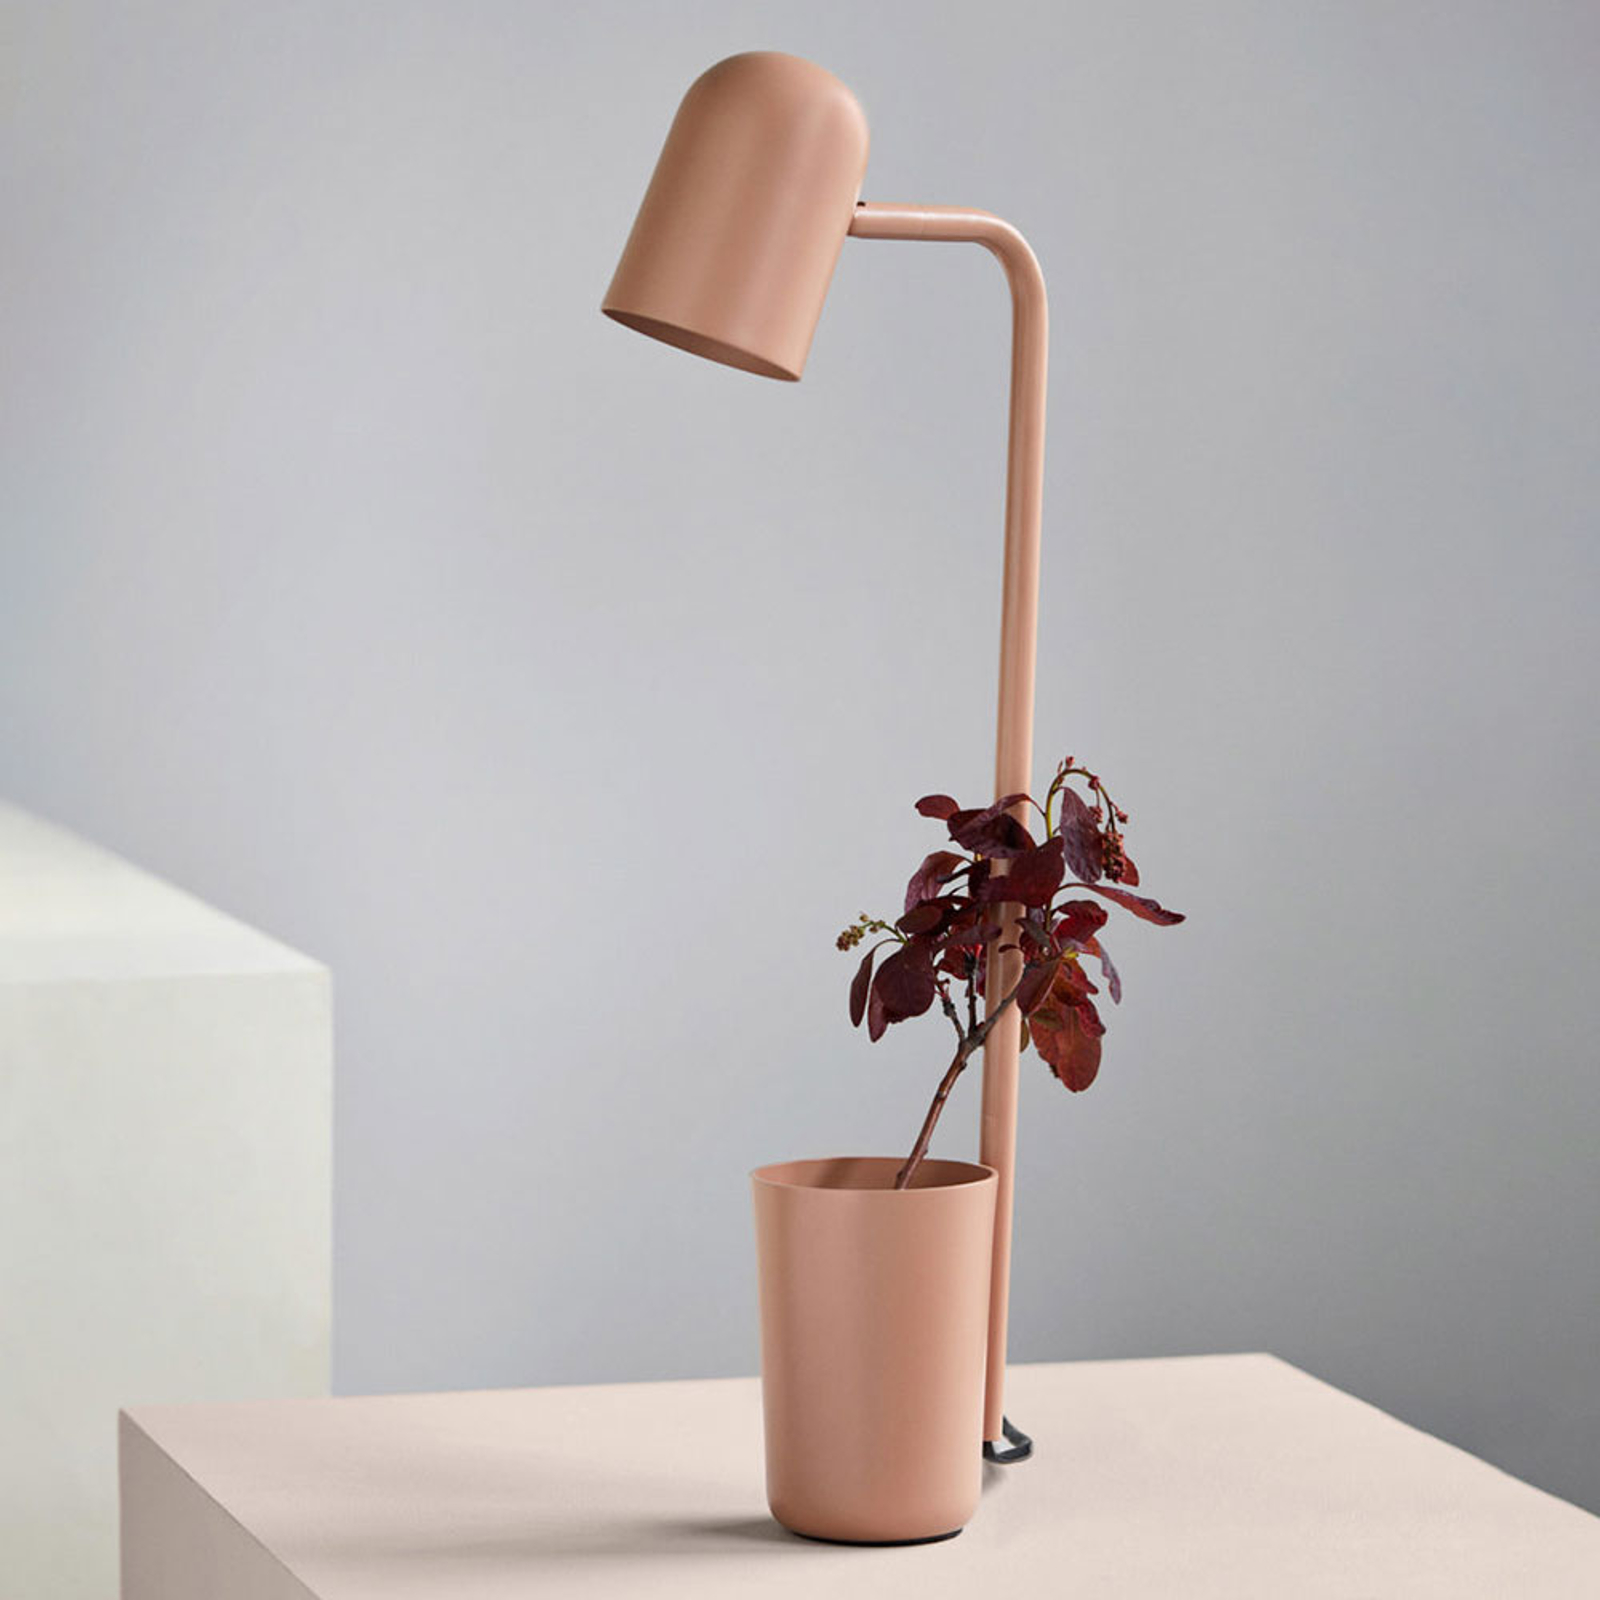 Northern lampe à poser Buddy table beige